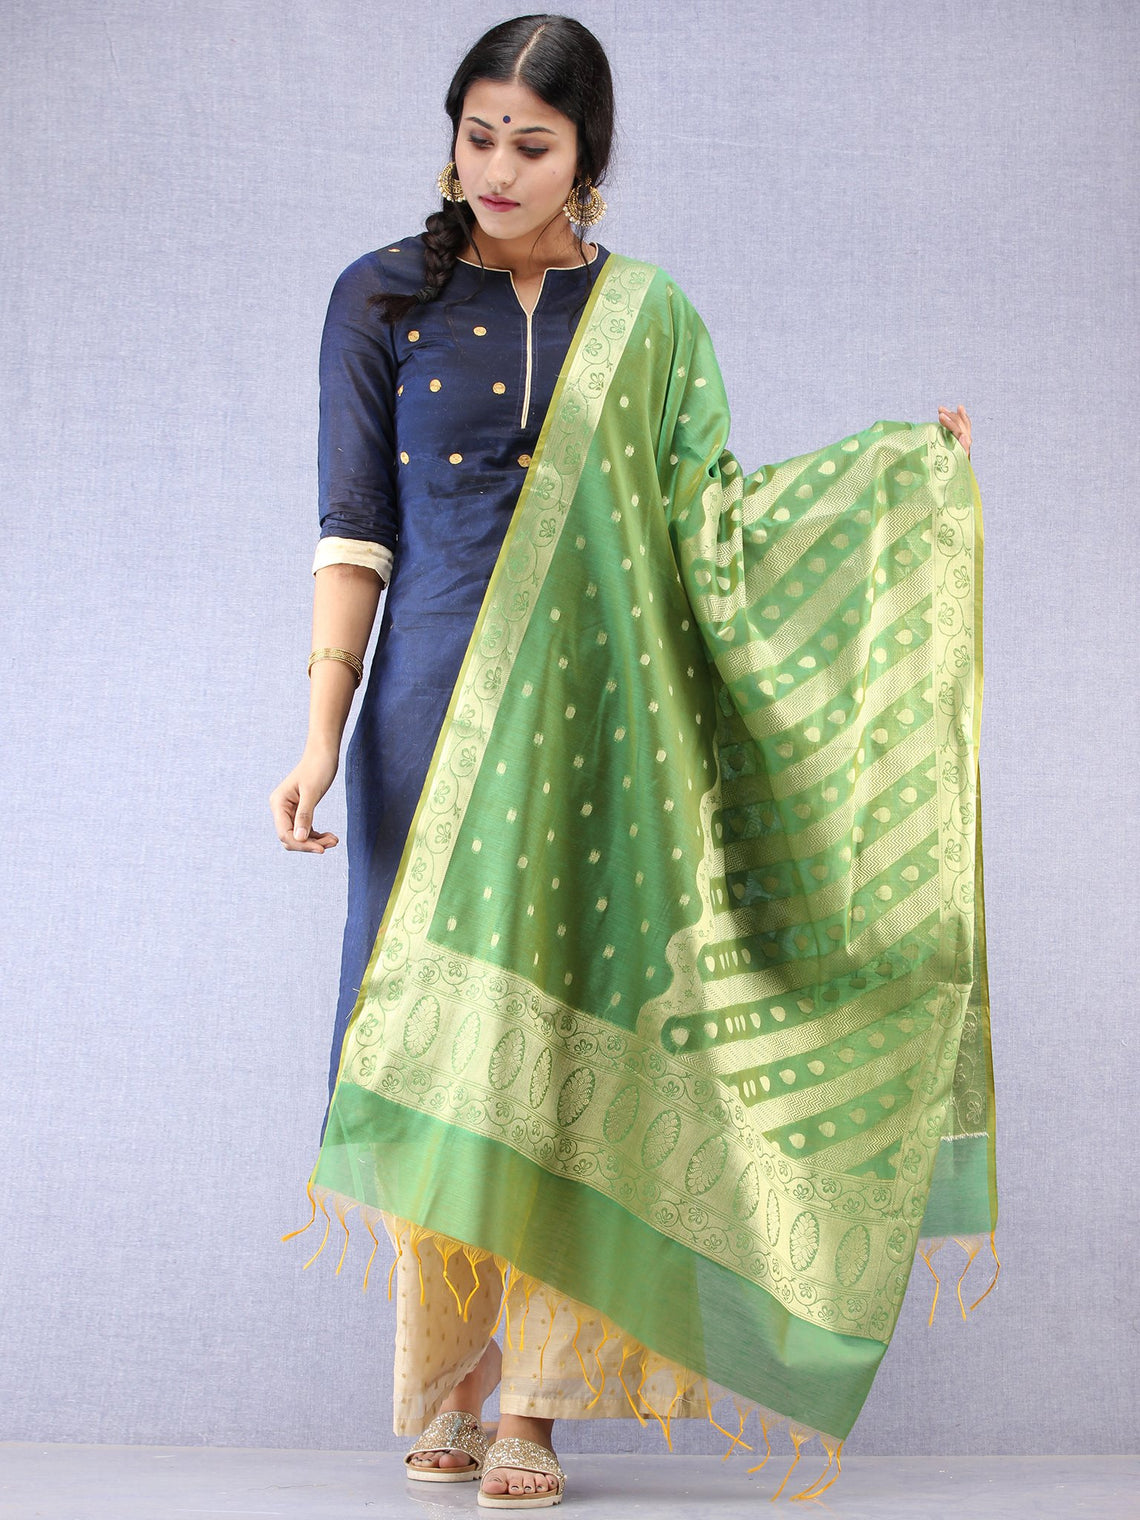 Banarasi Chanderi Dupatta With Resham Work - Green & Gold - D04170805